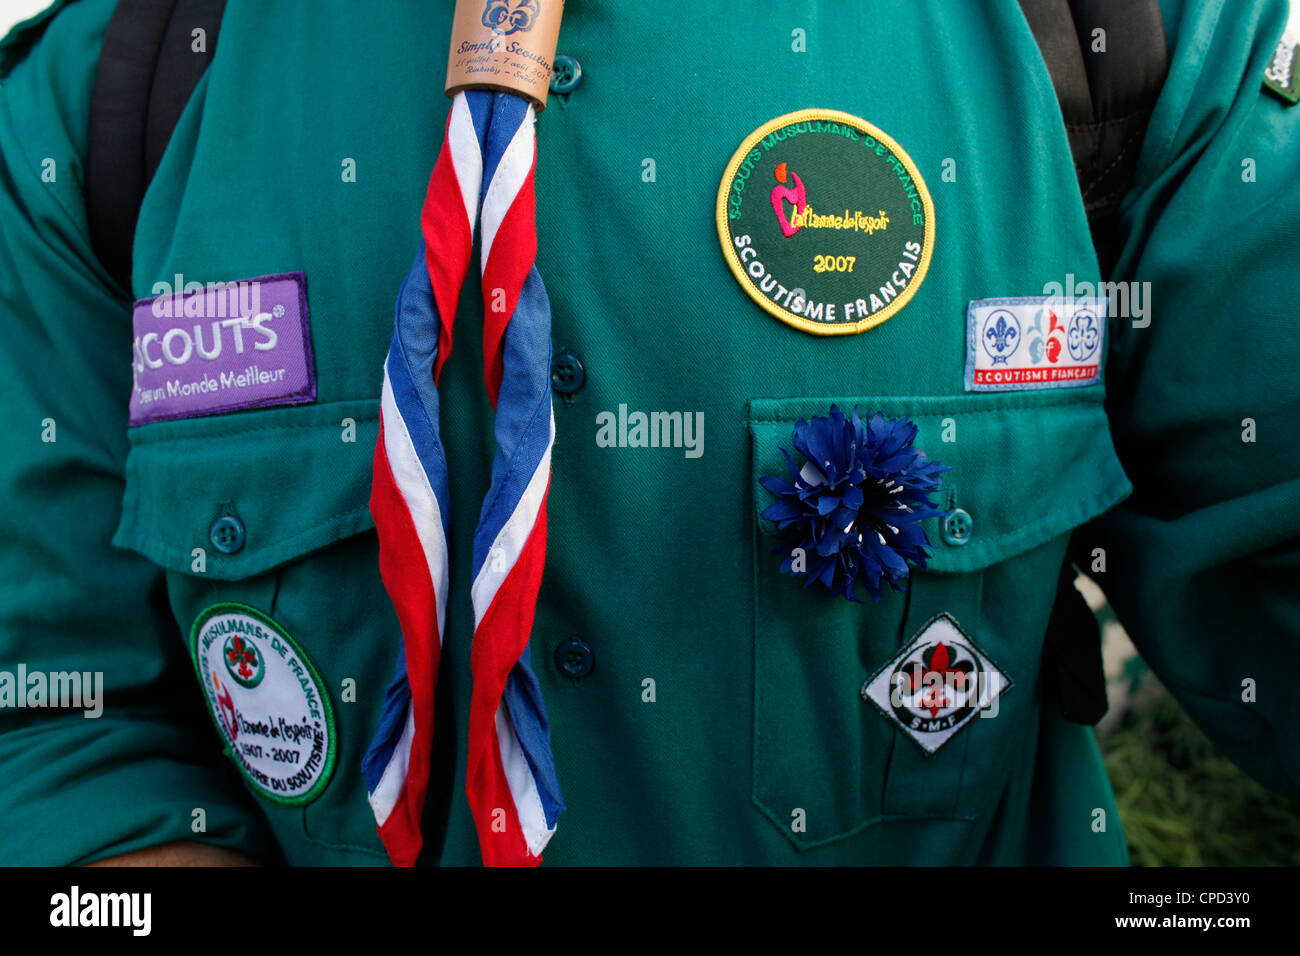 French Muslim scout, Paris, France, Europe - Stock Image